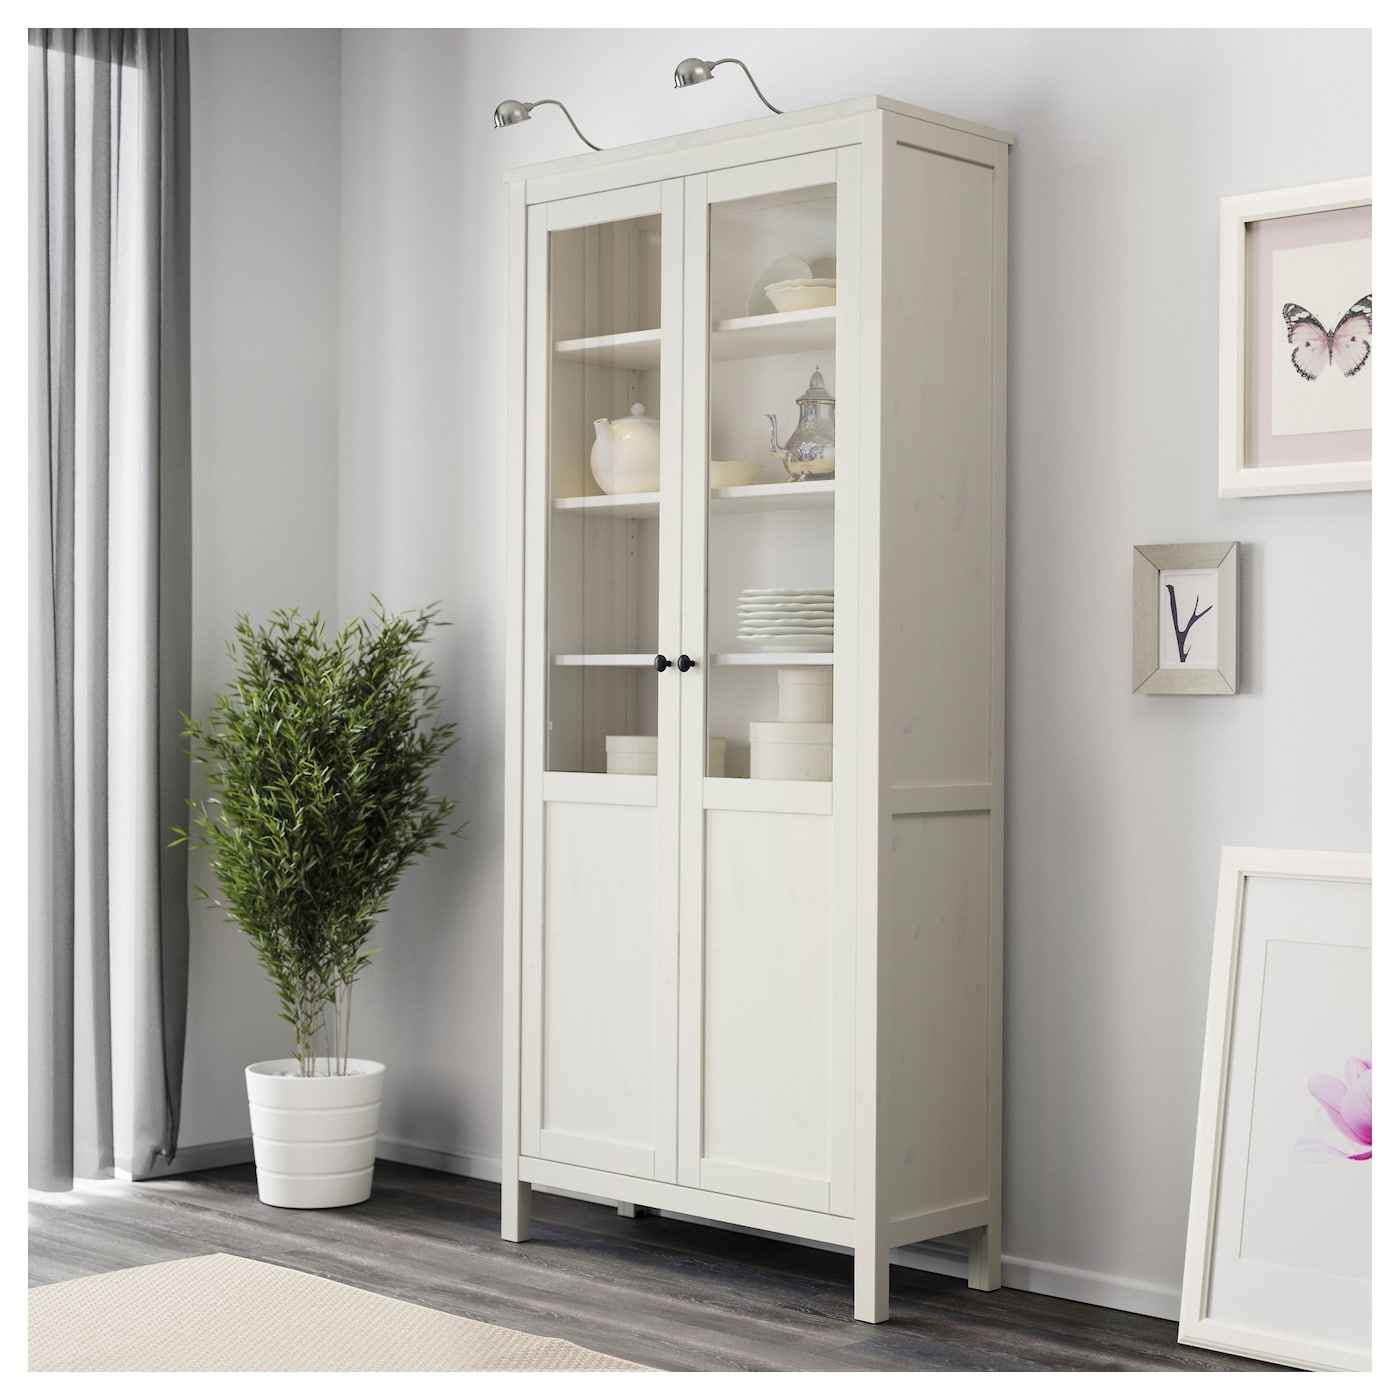 Hemnes cabinet with panel glass door white stain 90x197 cm Glass cabinet doors